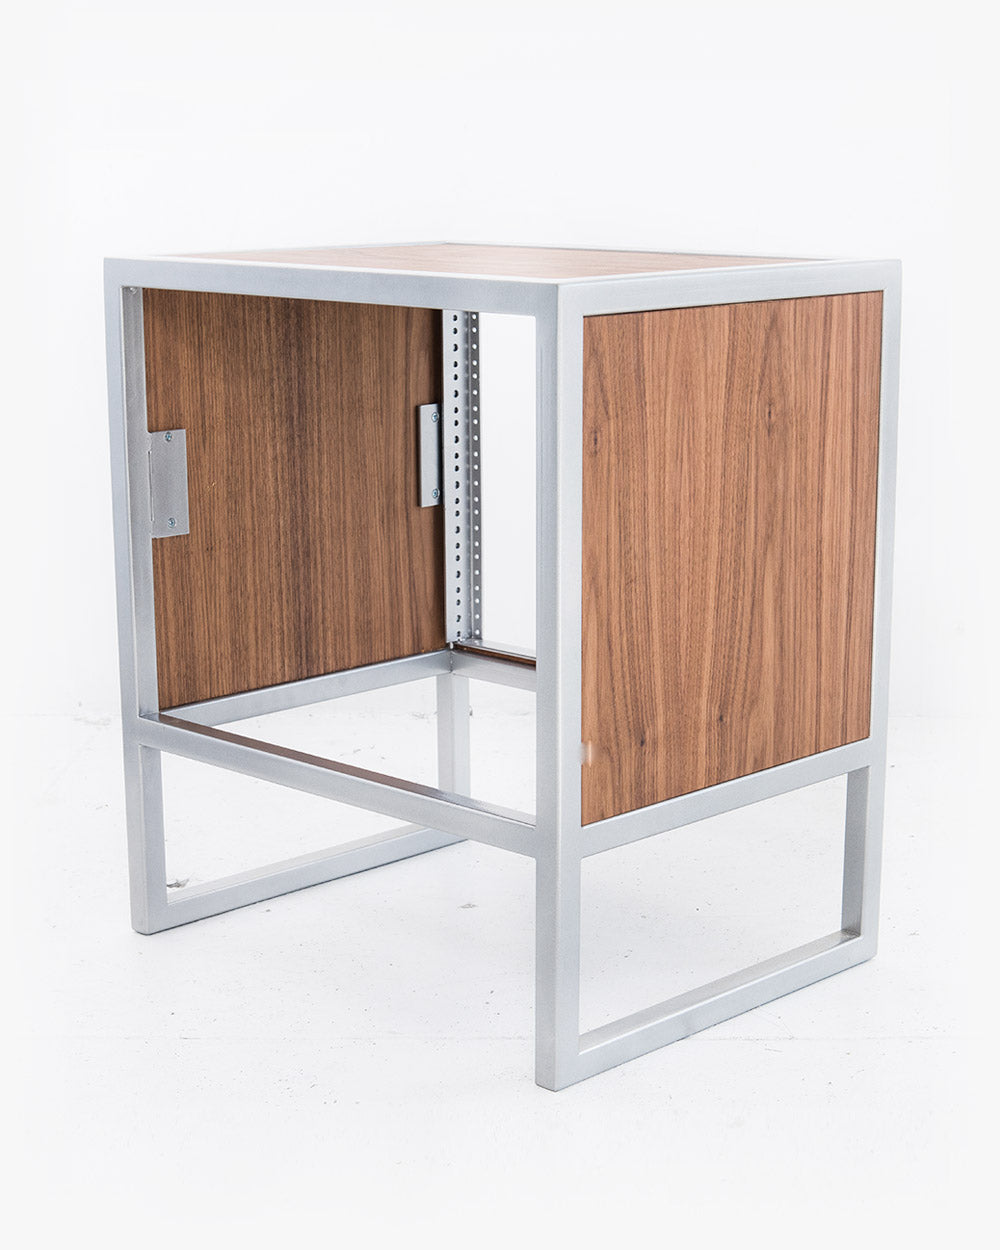 8U Studio Rack (Walnut / Brushed Steel)